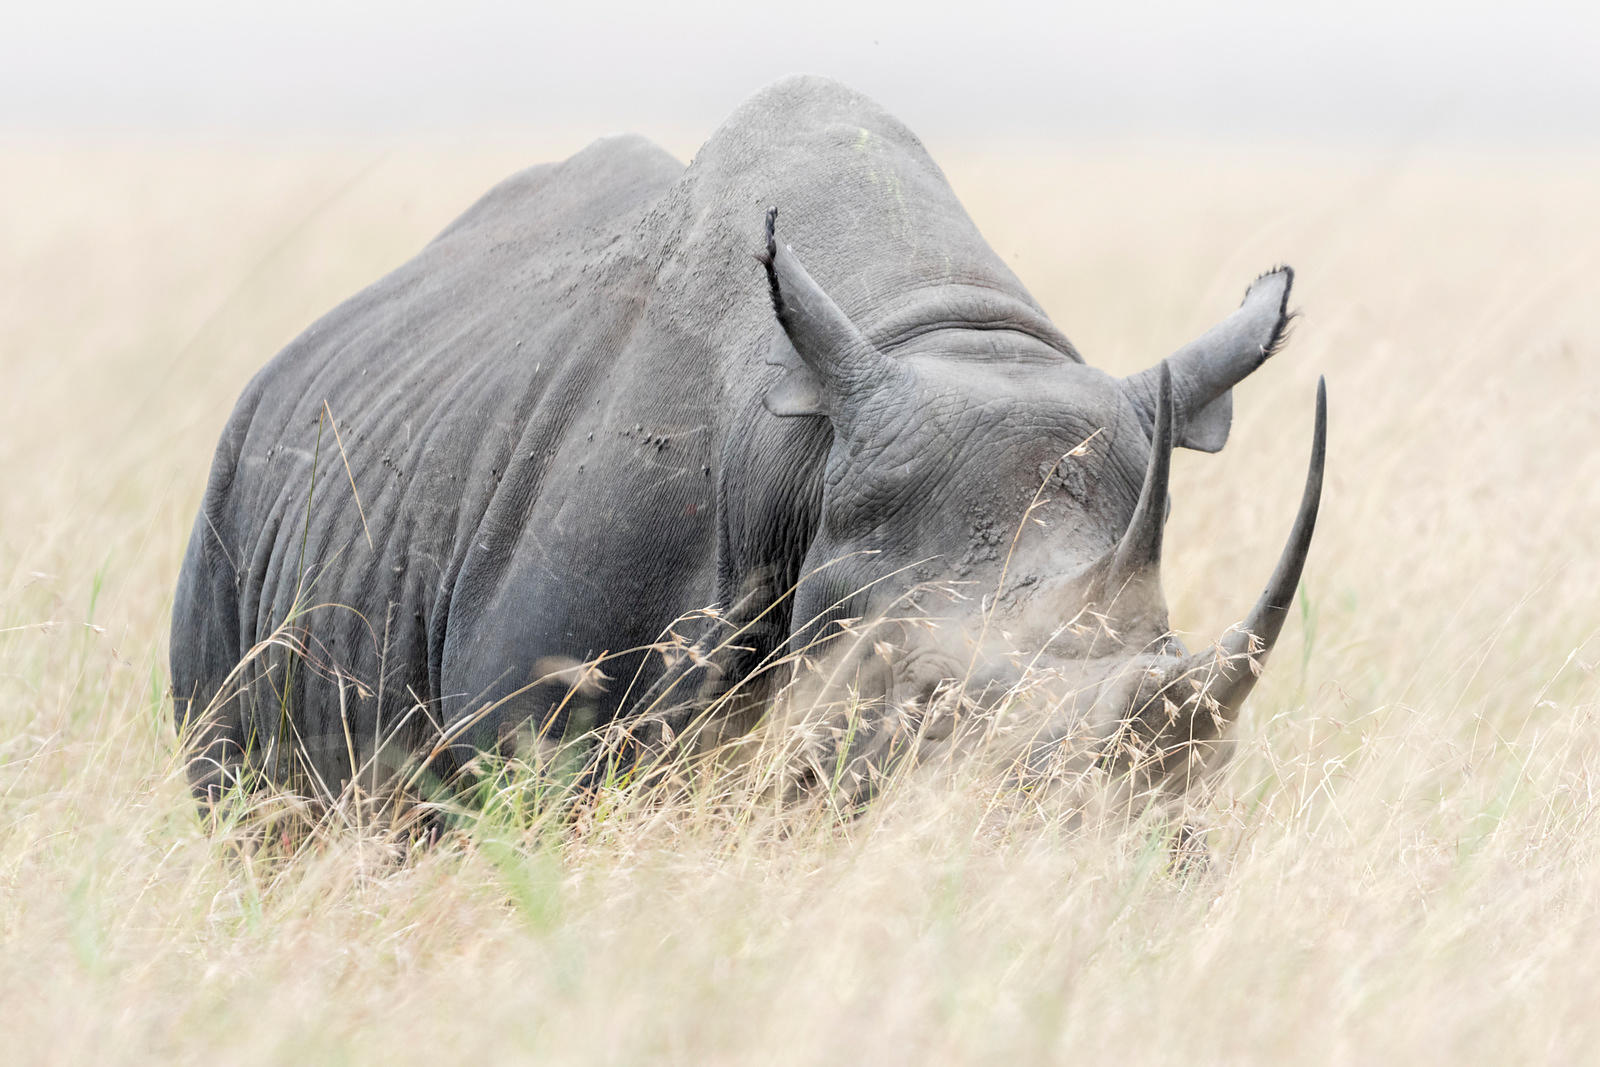 Black Rhino in Tall Grass